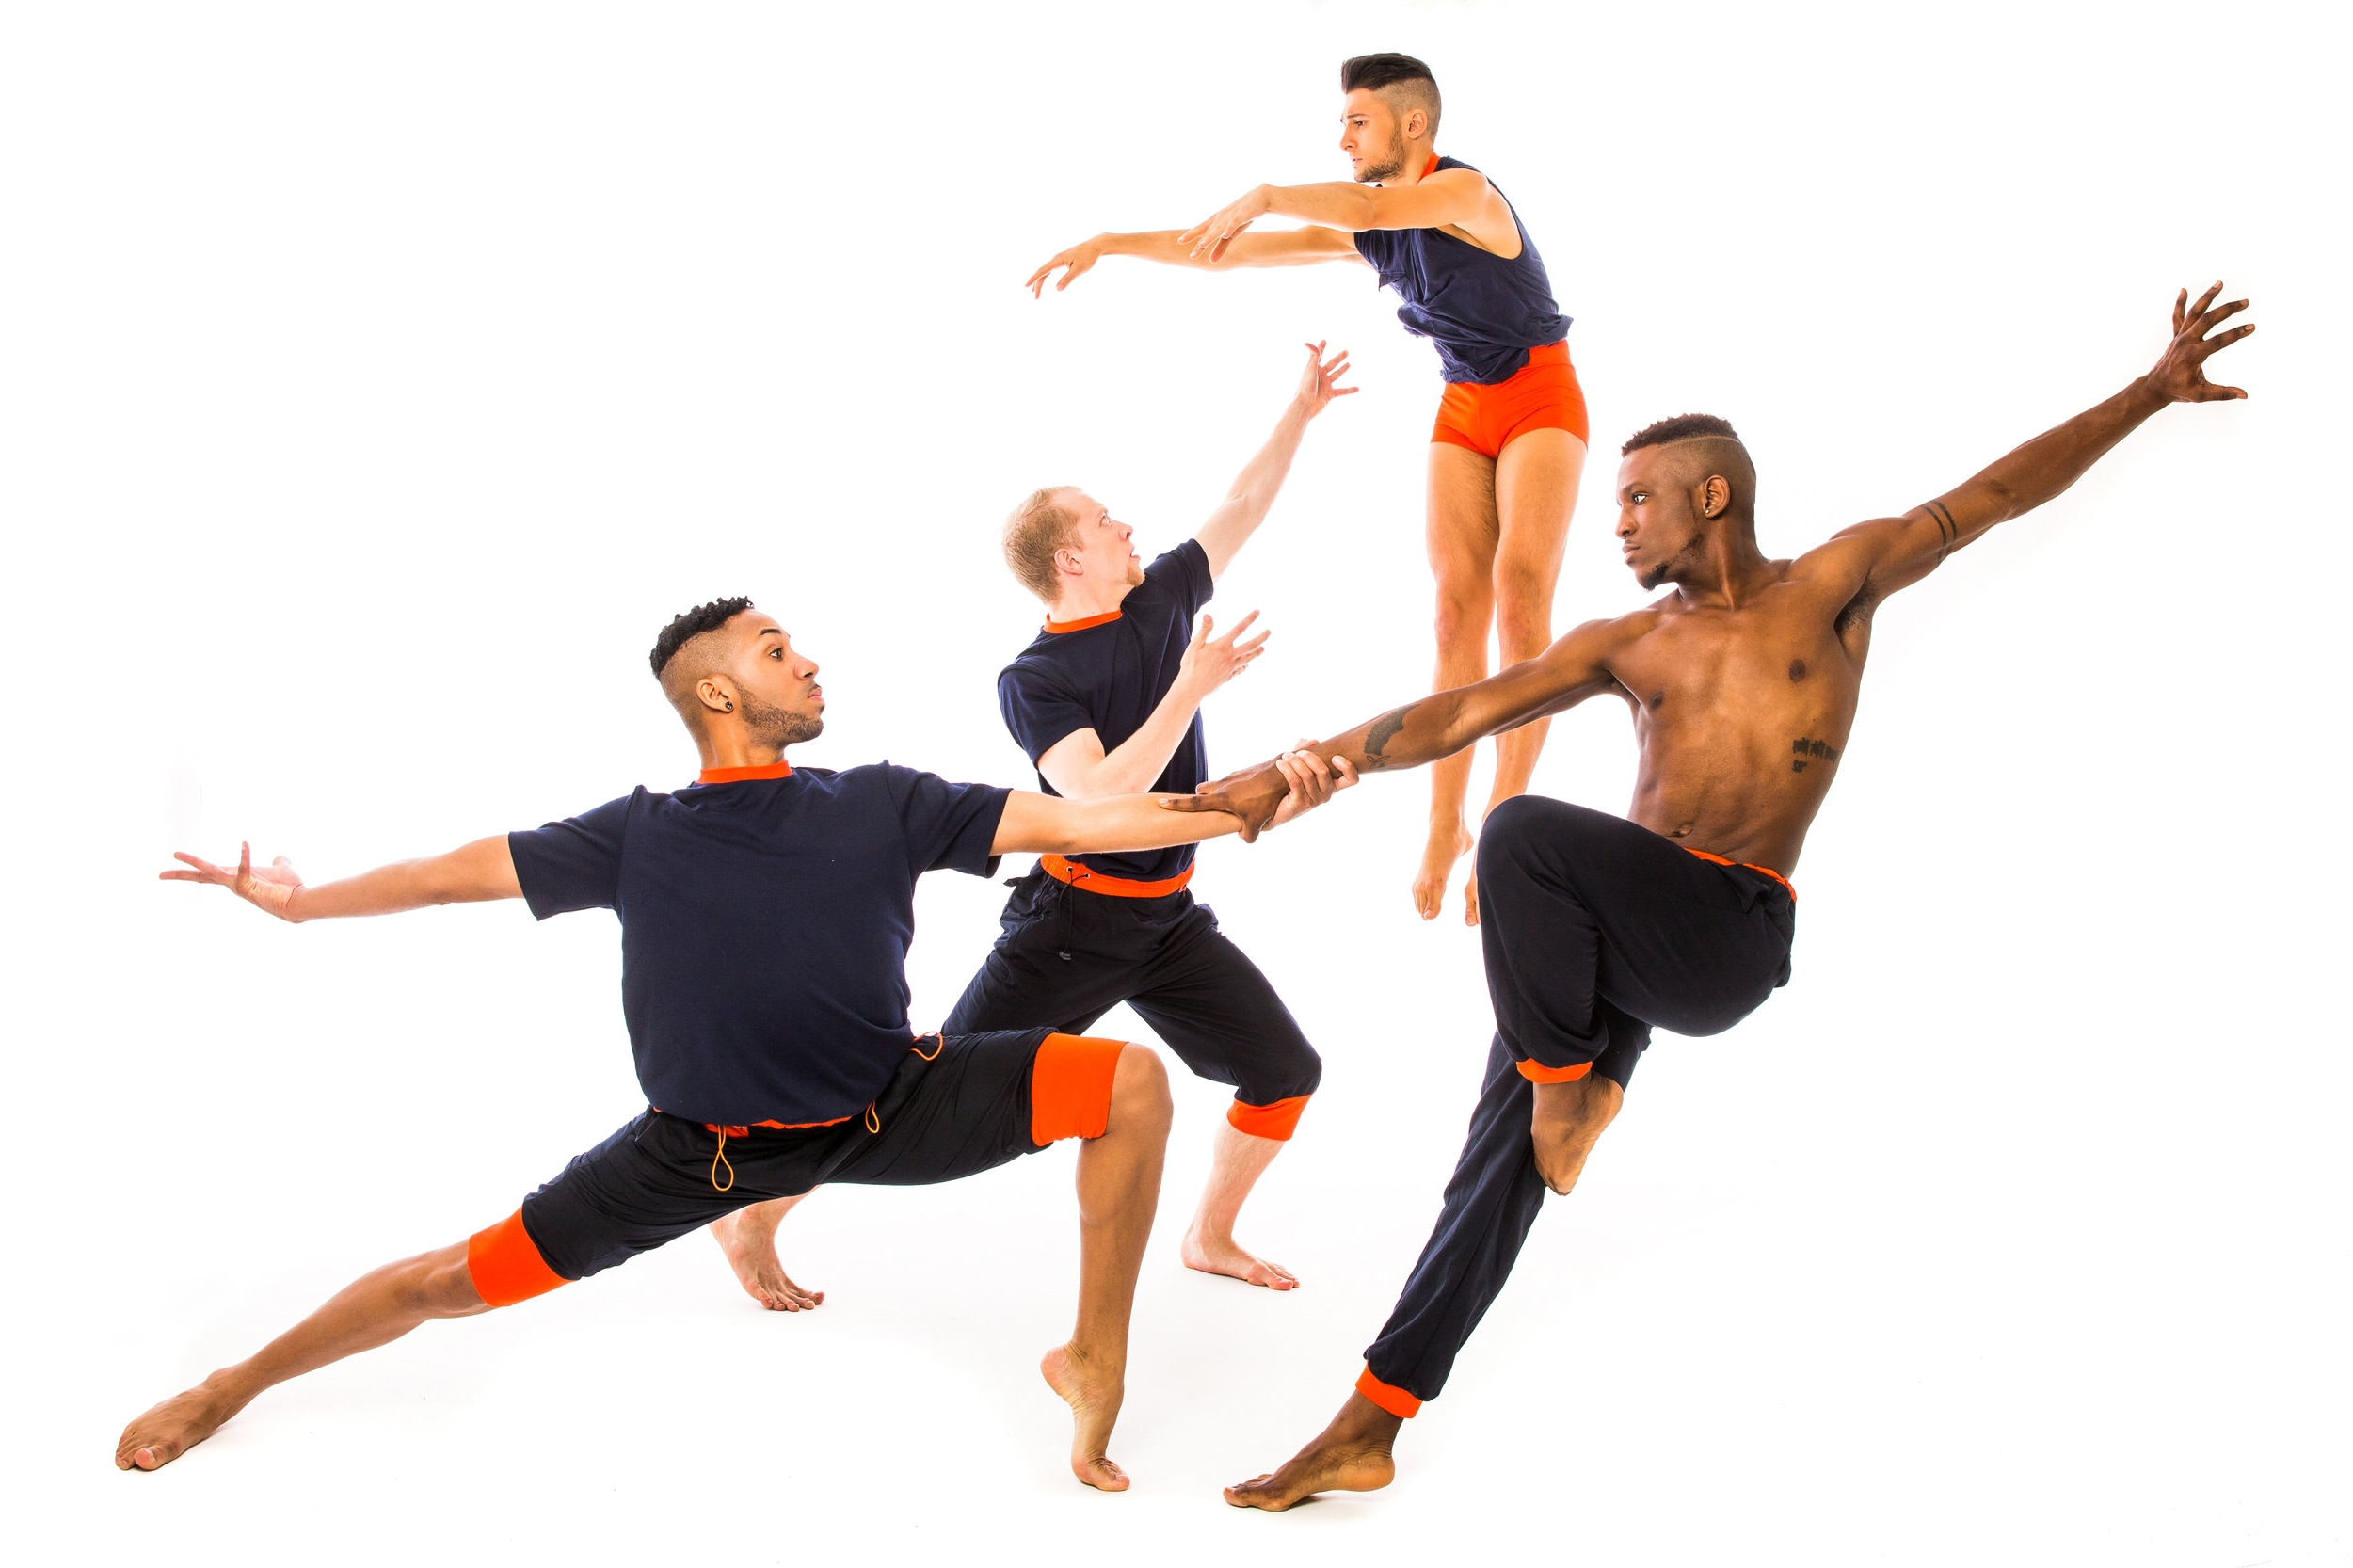 DONATE WHILE SHOPPING - At EMD we have various ways in which you can show your support. One of which is using AmazonSmile! Amazon donates 0.5% of your eligible AmazonSmile purchases to Elisa Monte Dance.